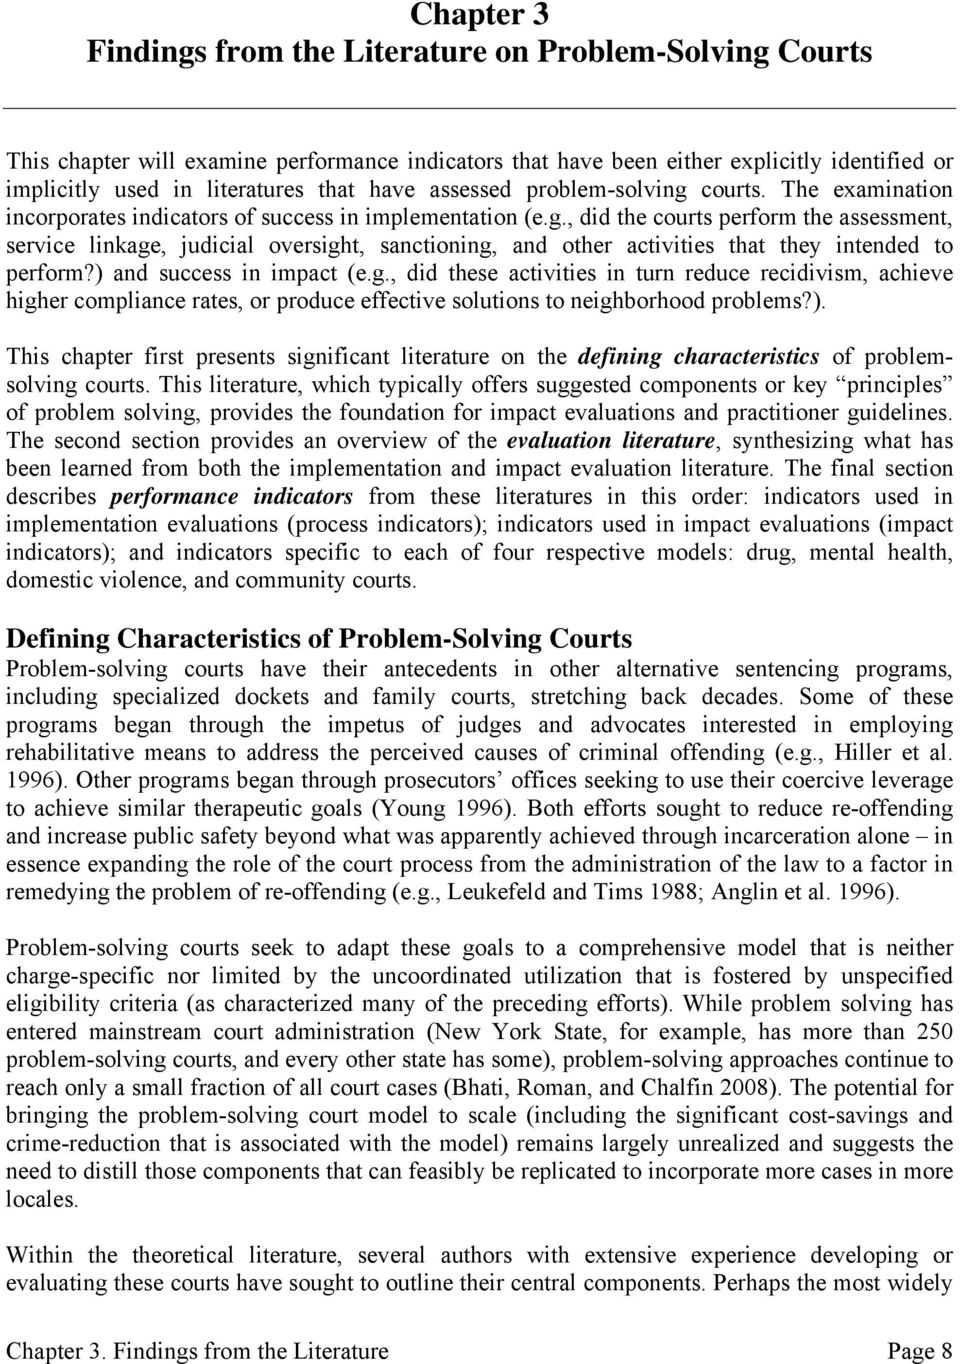 ) and success in impact (e.g., did these activities in turn reduce recidivism, achieve higher compliance rates, or produce effective solutions to neighborhood problems?). This chapter first presents significant literature on the defining characteristics of problemsolving courts.